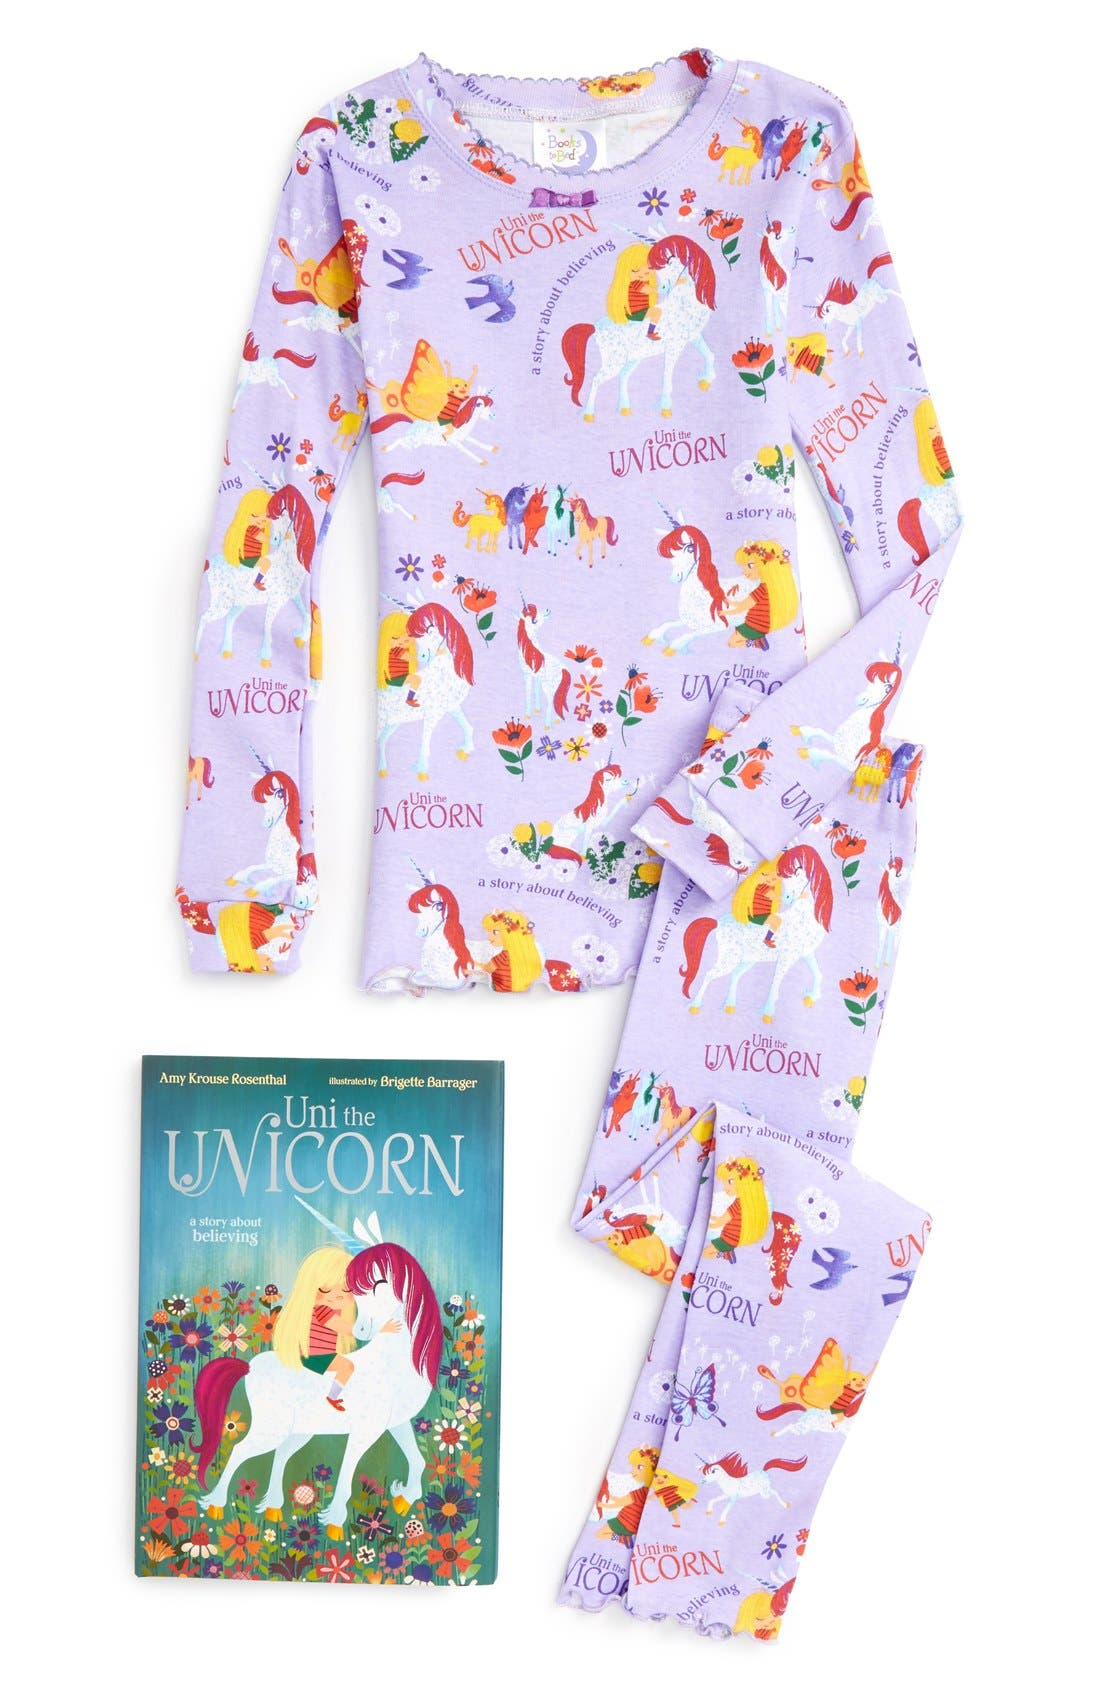 Main Image - Books to Bed Uni the Unicorn Fitted Two-Piece Pajamas & Book Set (Toddler Girls, Little Girls & Big Girls)